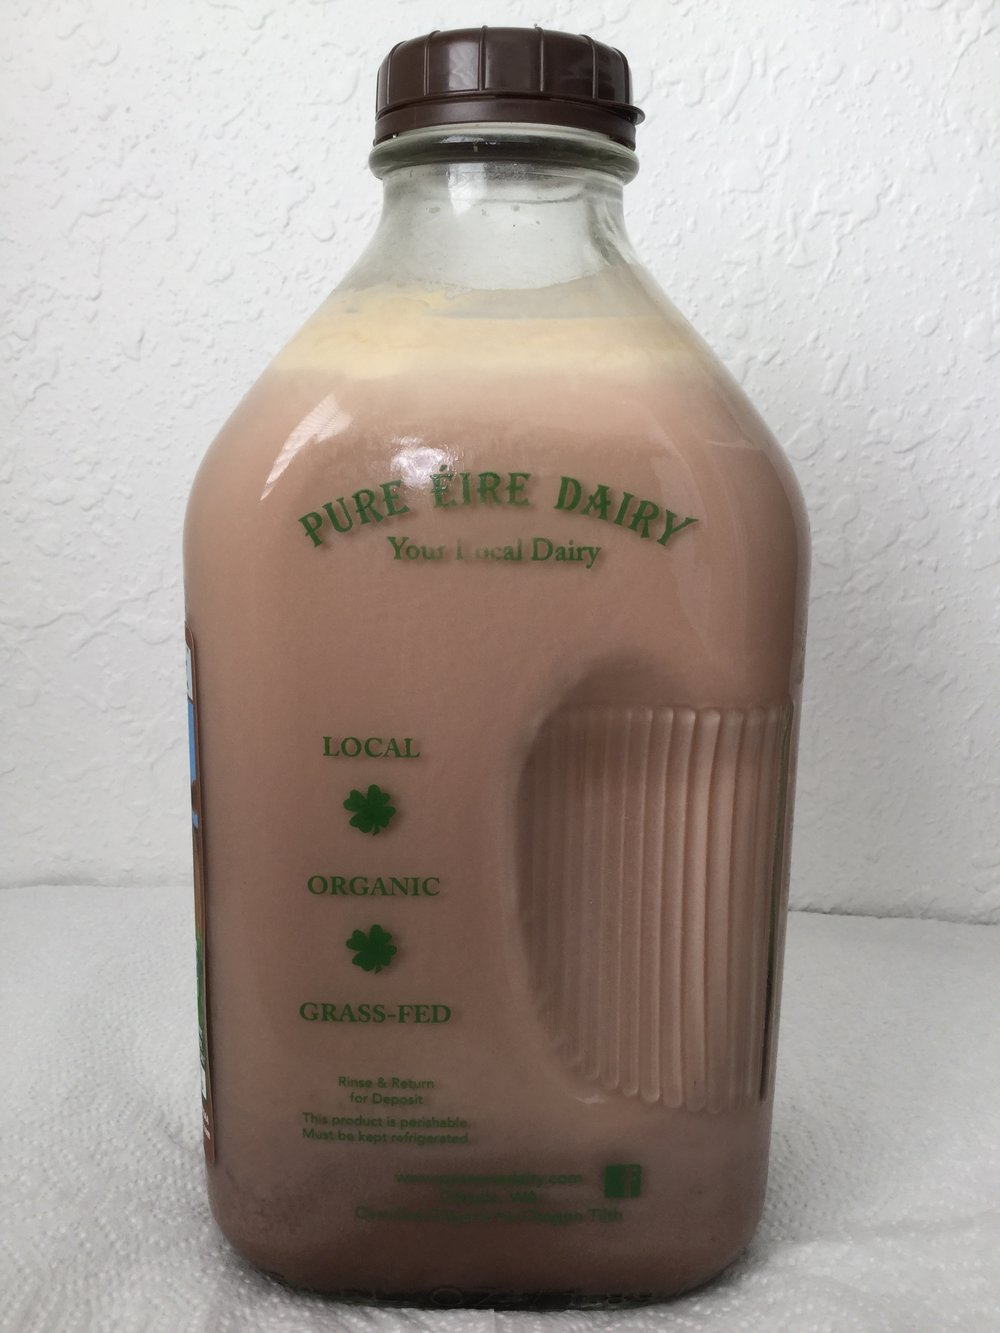 Pure Eire Organic Chocolate Milk Side 1